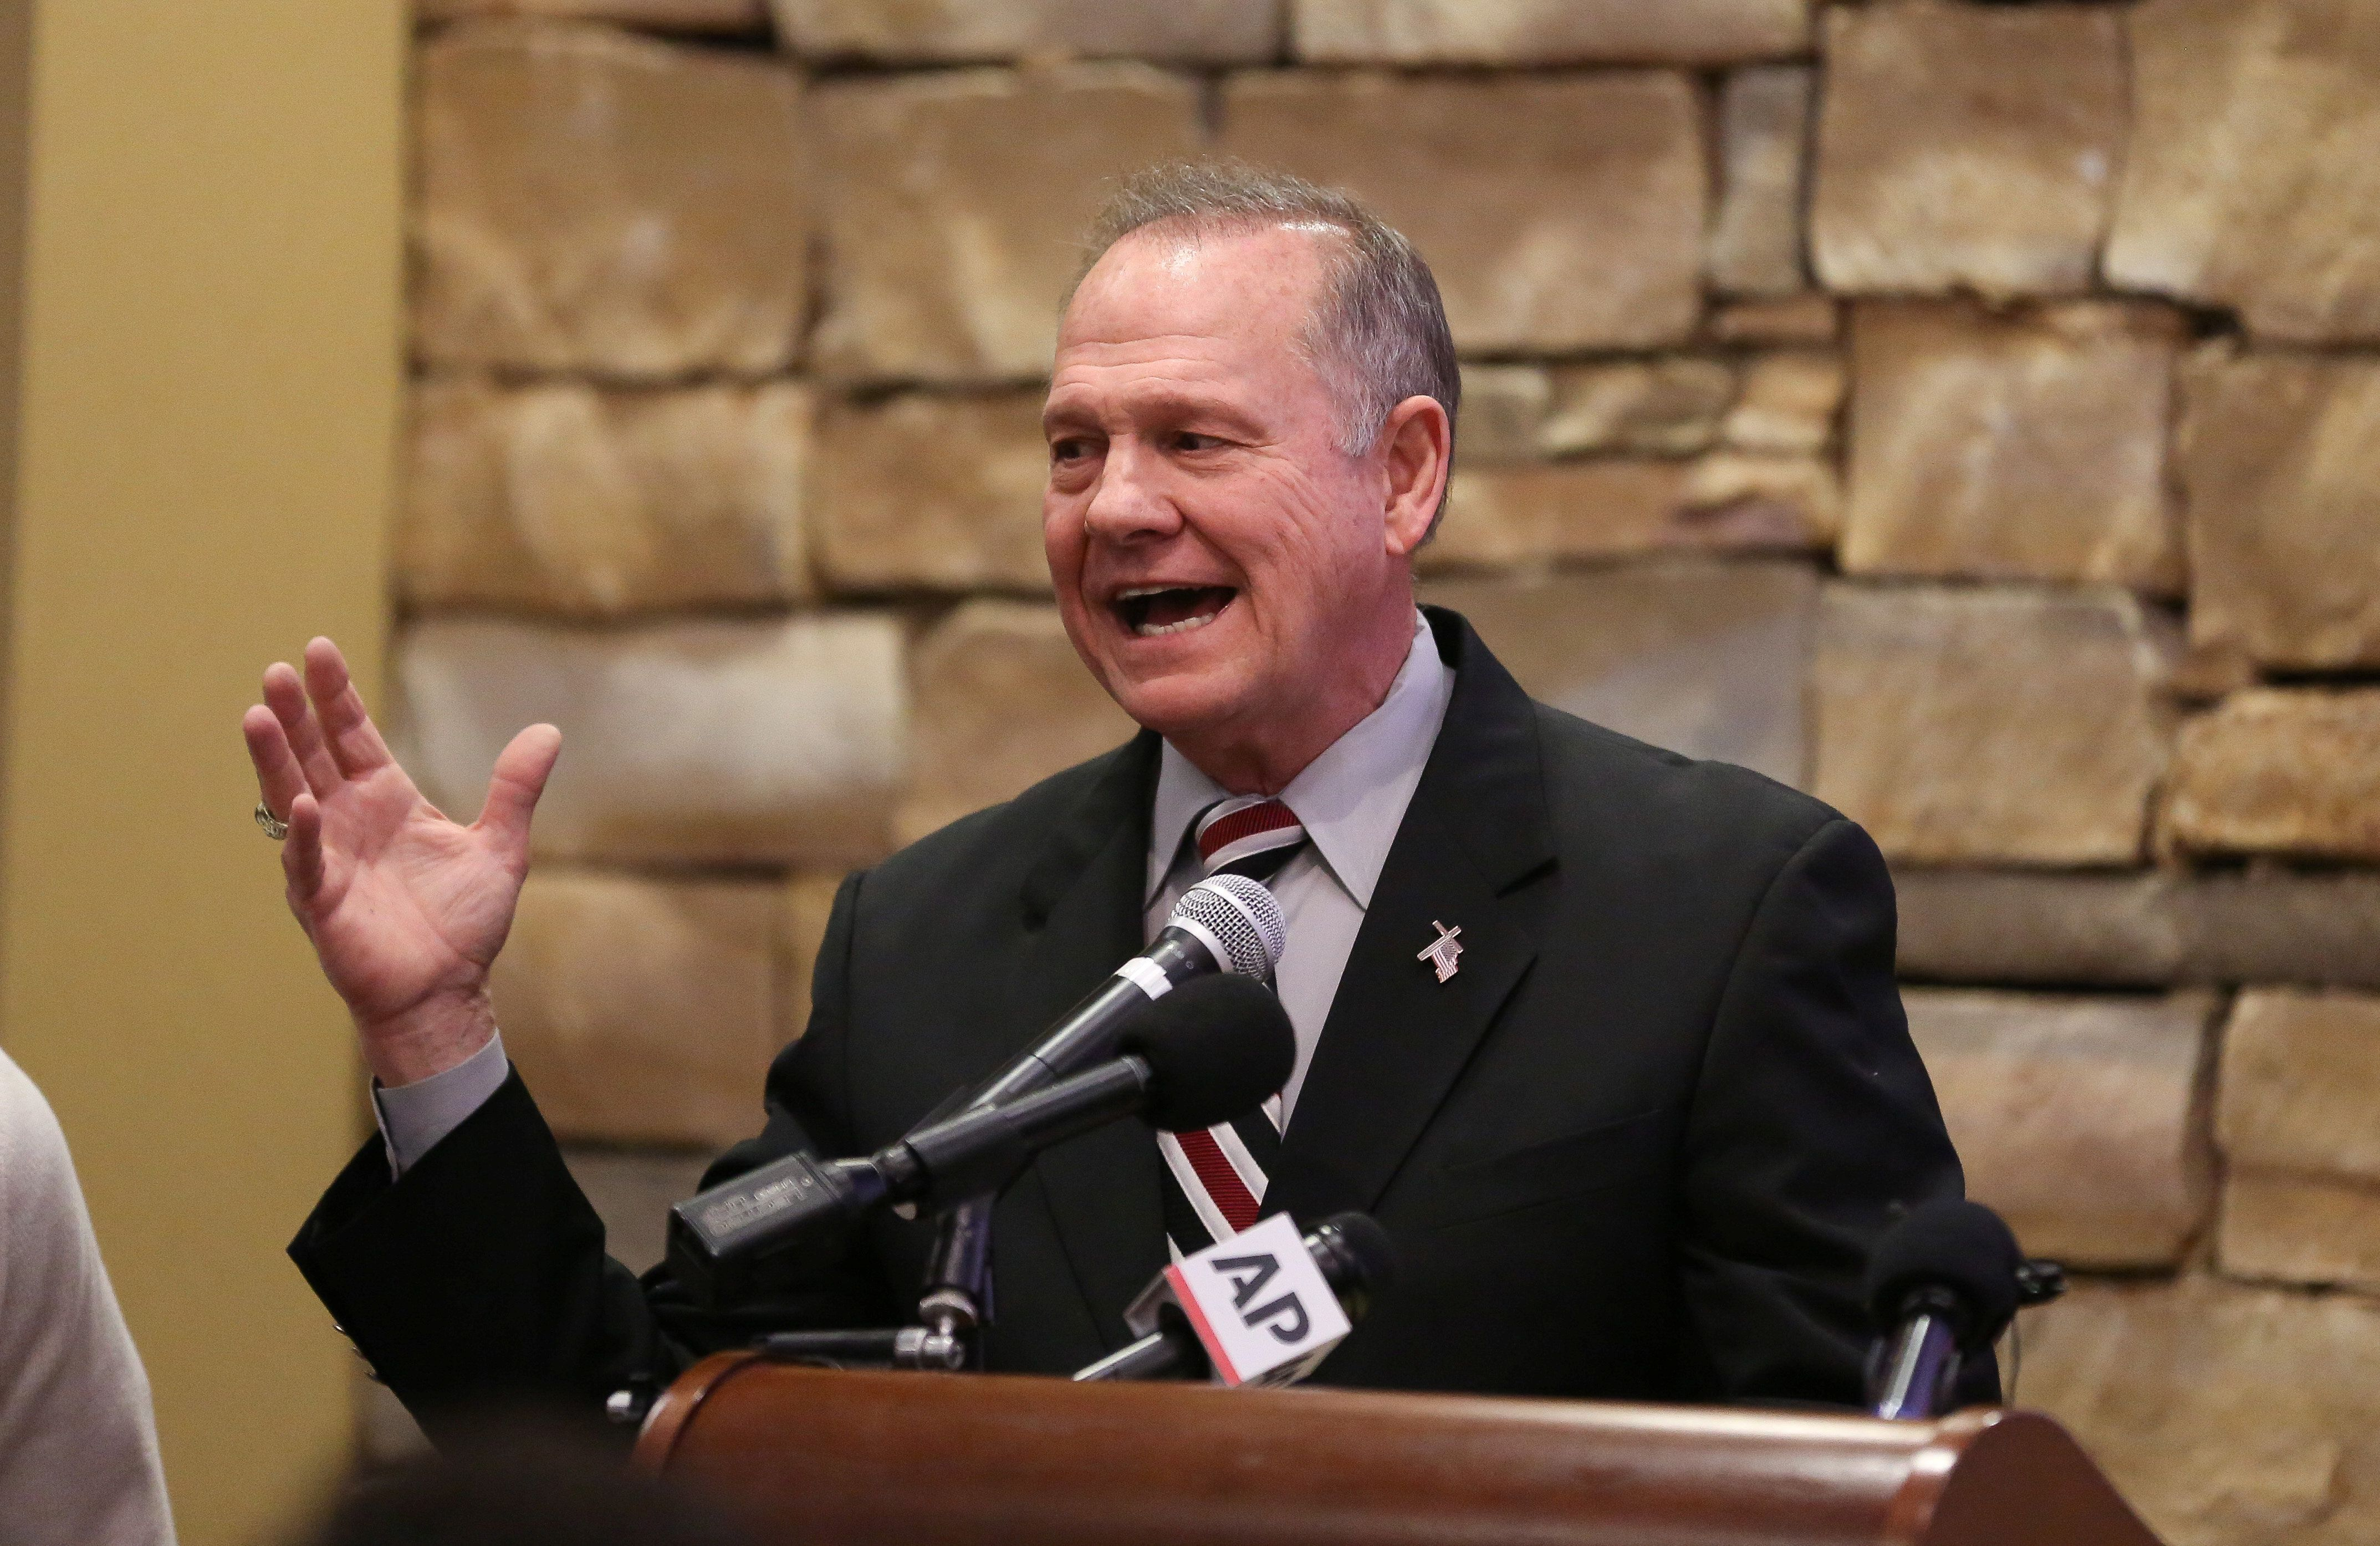 Judge Roy Moore speaks as he participates in the Mid-Alabama Republican Club's Veterans Day Program in Vestavia Hills, Alabama, U.S. November 11, 2017. REUTERS/Marvin Gentry